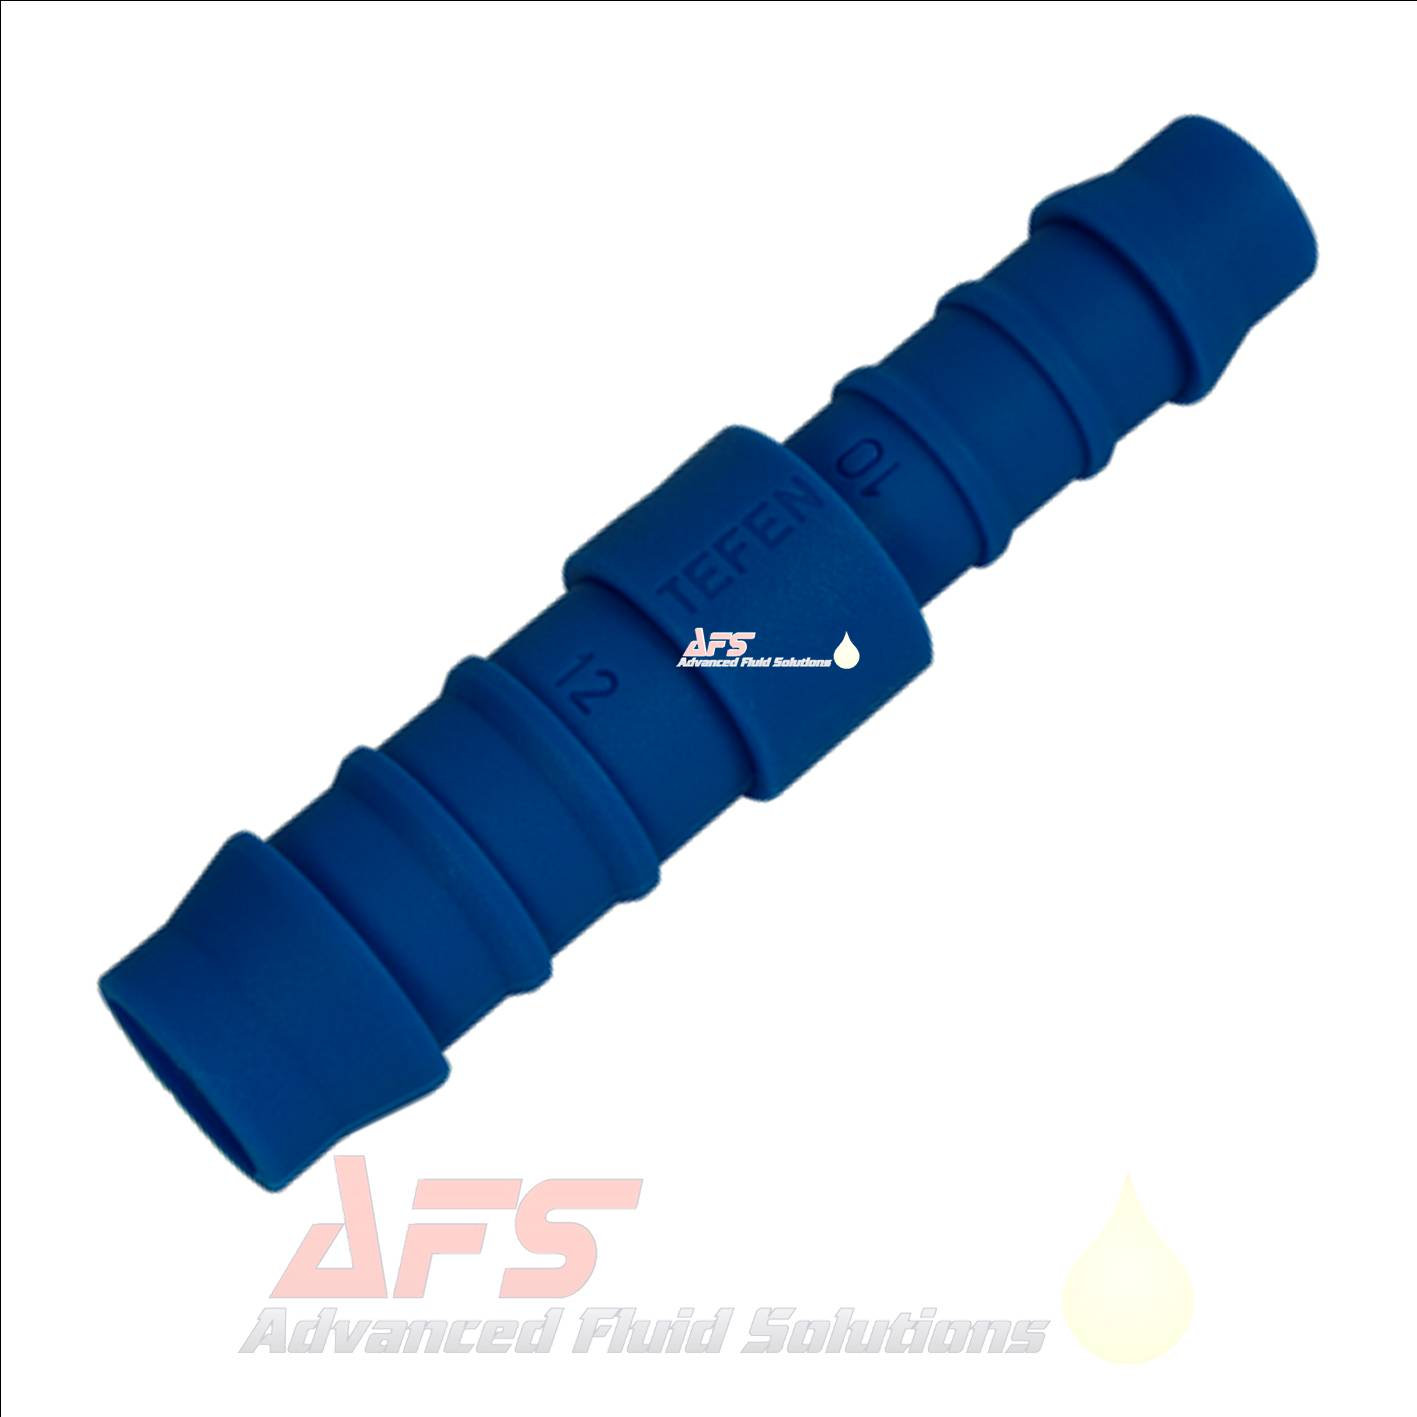 5mm Reducing Straight Tefen Hose Joiner Connector Blue Nylon Fitting